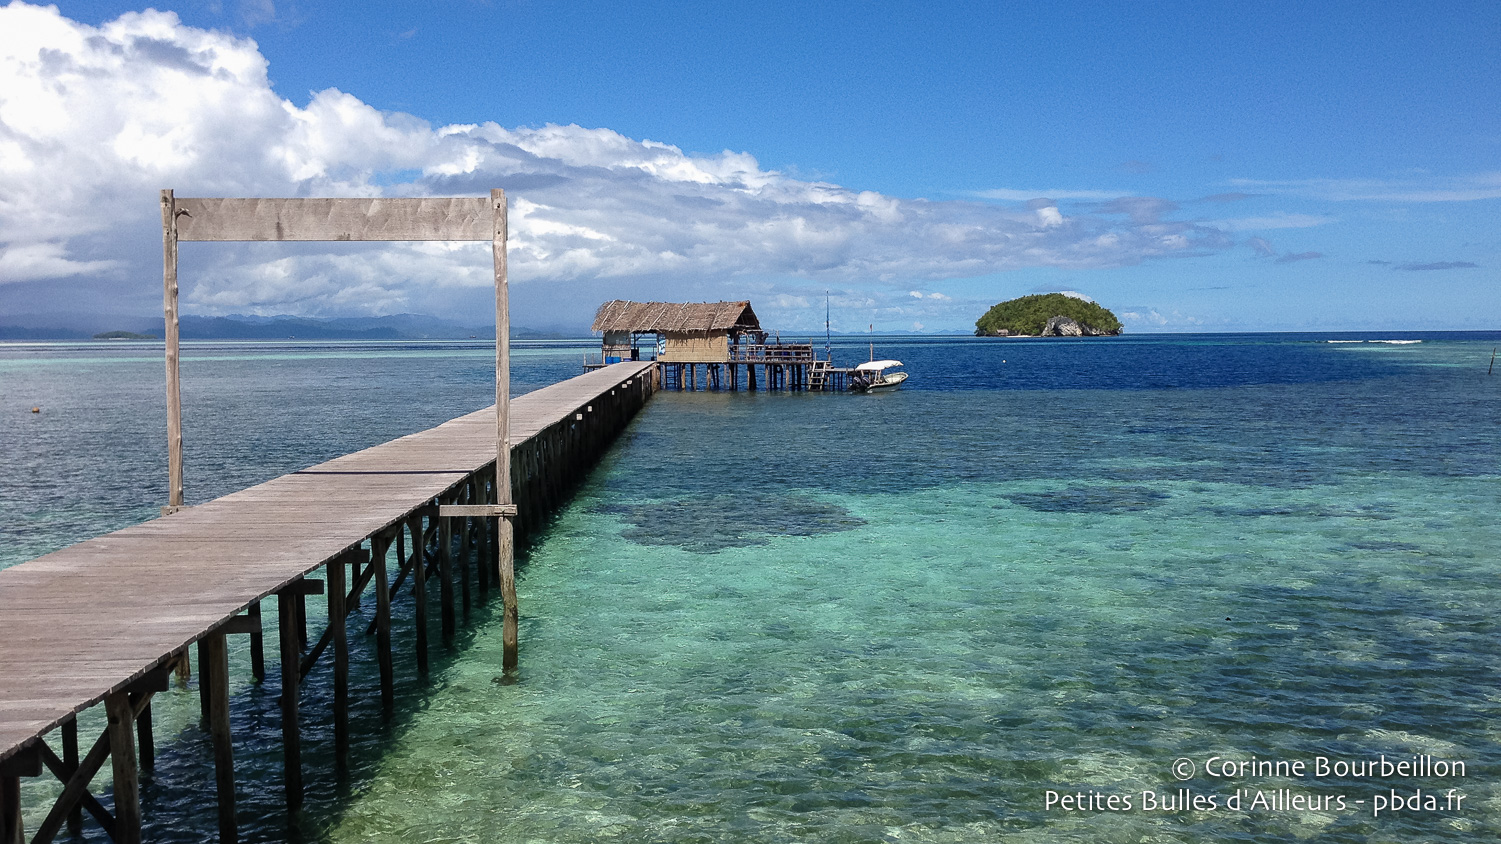 The pontoon of Sorido Bay Resort and its blue hole in the middle of the coral. Raja Ampat, West Papua, Indonesia, January 2015.